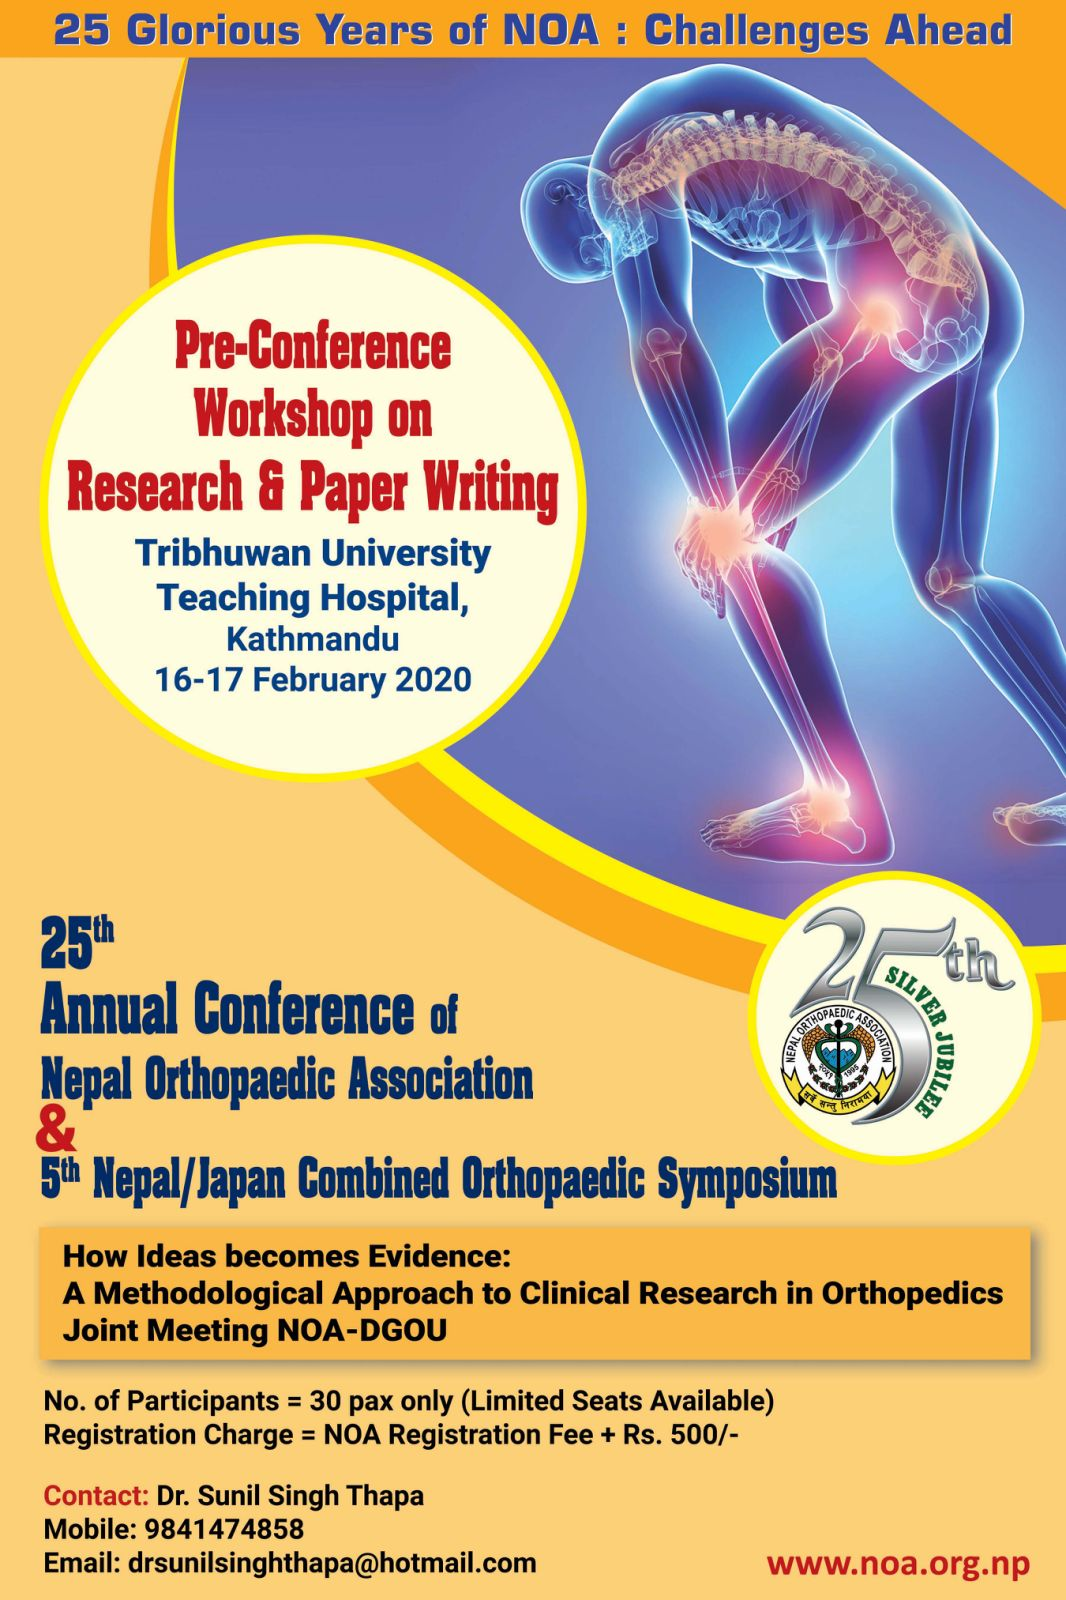 workshop-on-research-paper-writing-16th-17th-feb-2020